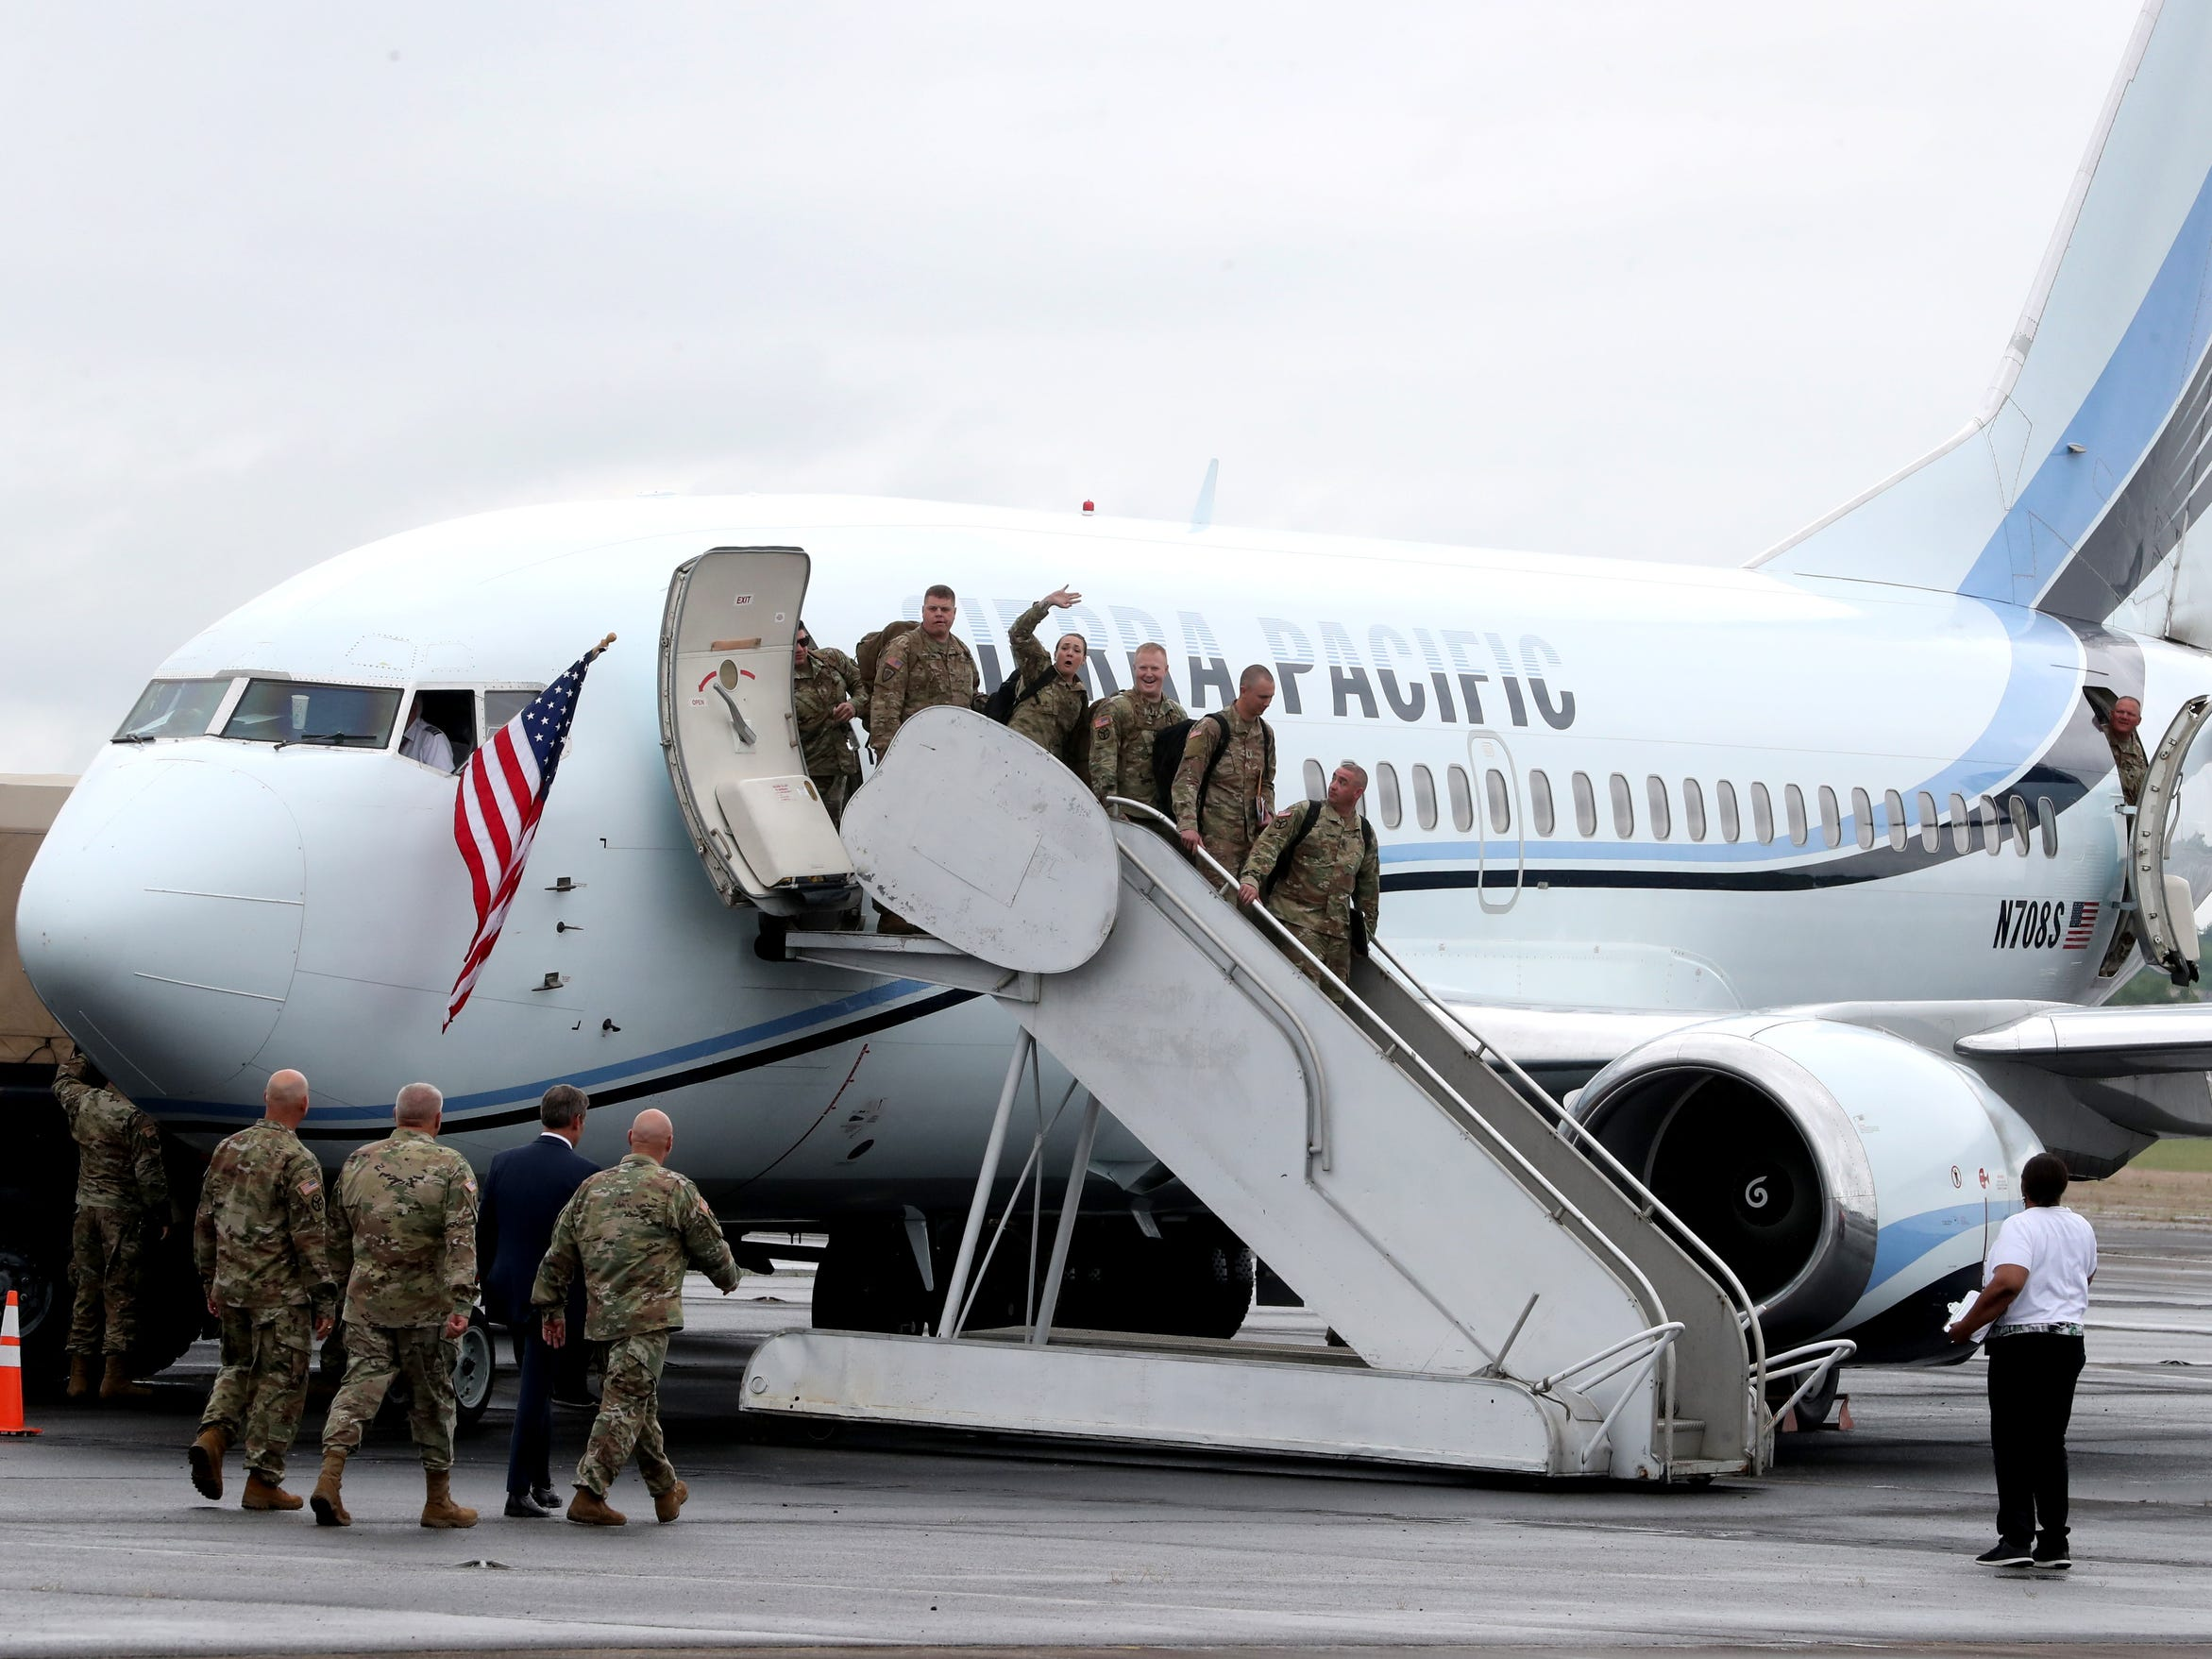 A soldier from the 278th ACR waves to the crowd as the troop gets off the plane, at the Volunteer Training Site in Smyrna, from a 9 month overseas deployment on Thursday, May 9, 2019. Tennessee Governor Bill Lee approaches the plane to welcome the soldiers home.